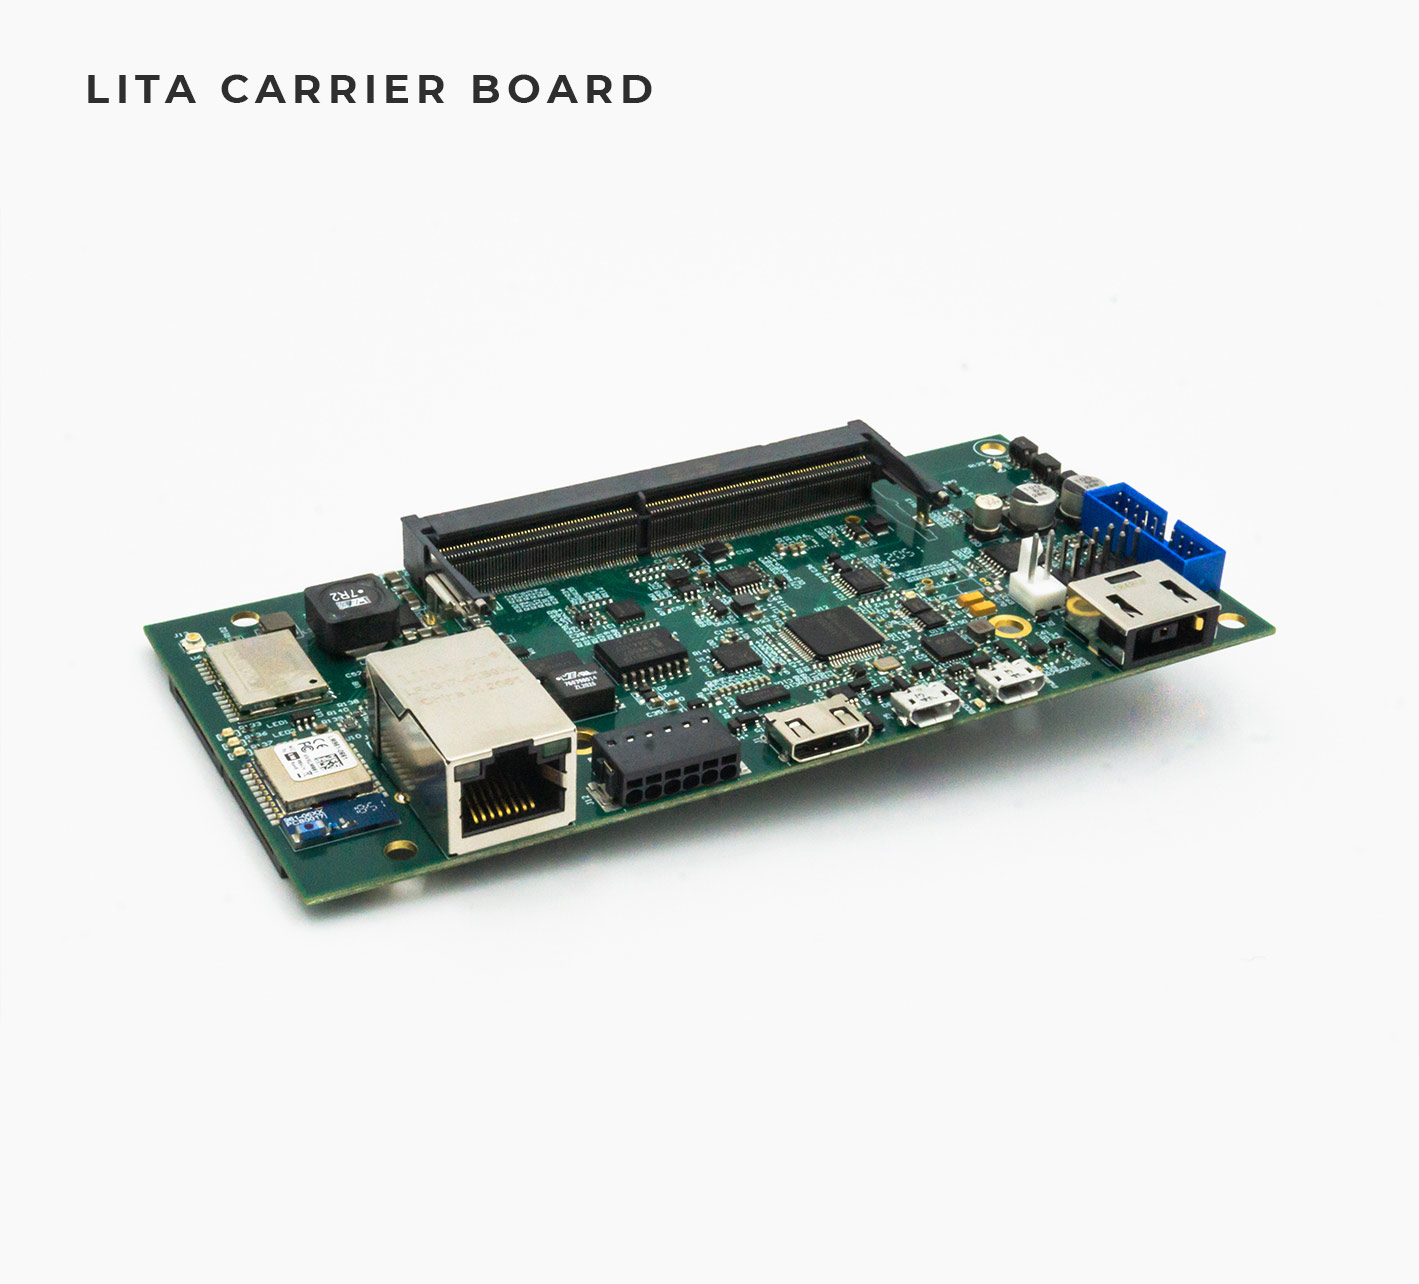 Lita Carrier Board